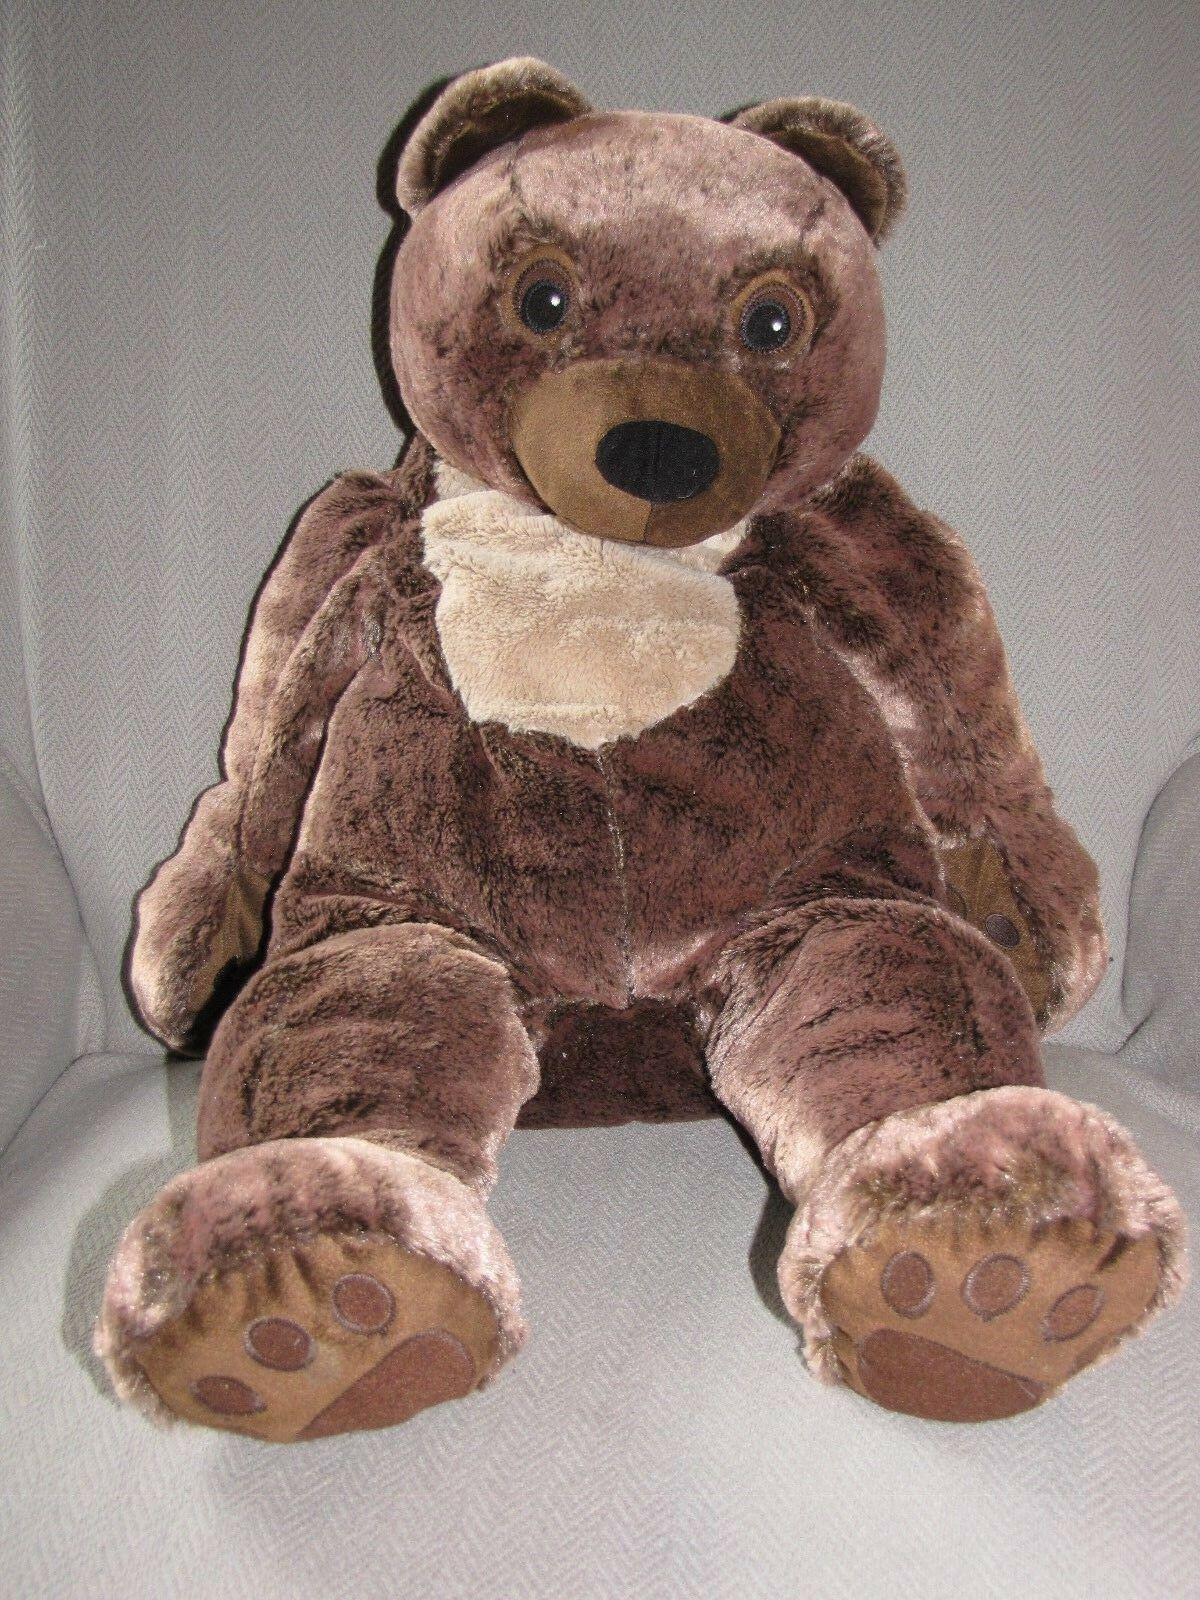 IKEA Teddy Bear Plush CUDDLY Braun Timeless Klappar Nalle Soft stuffed 20